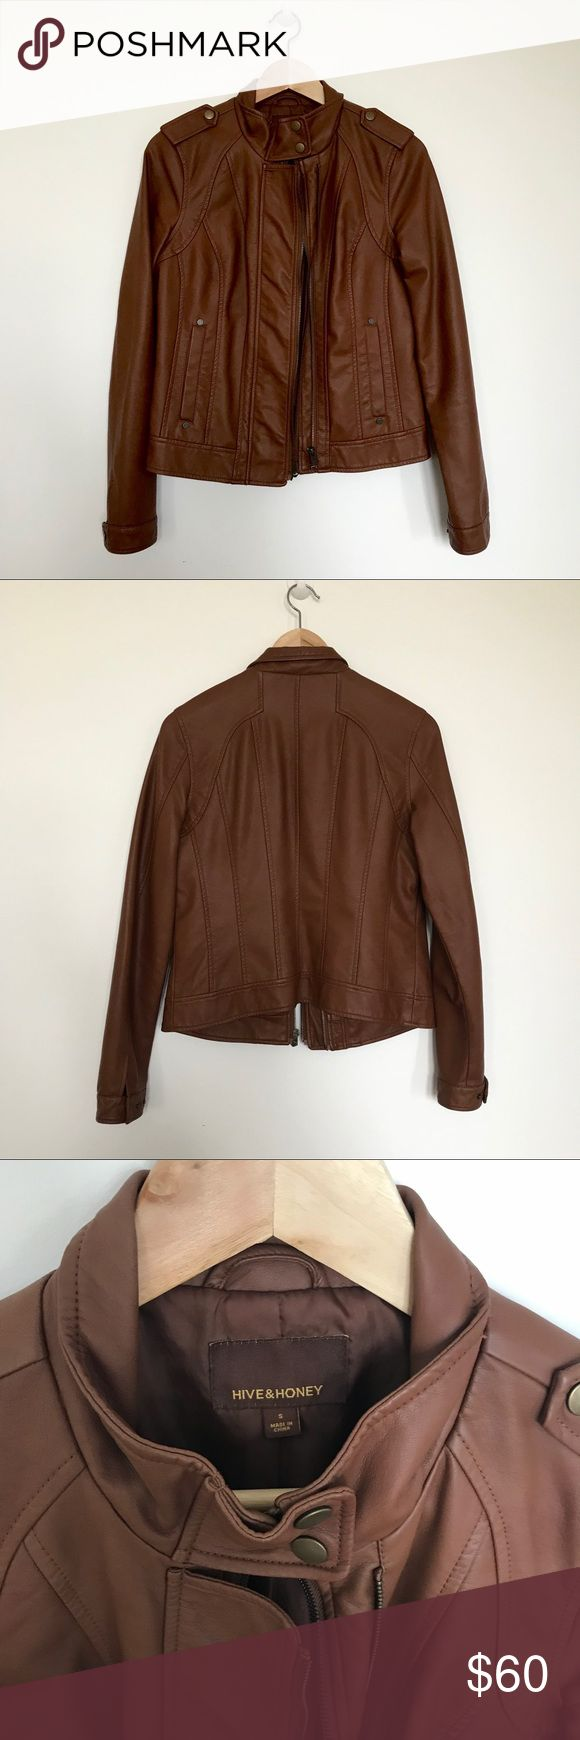 Hive & Honey faux leather jacket Beautiful pecan, vegan leather jacket from Hive & Honey  Size Small Excellent condition, no visible flaws. Worn twice. Hive & Honey Jackets & Coats